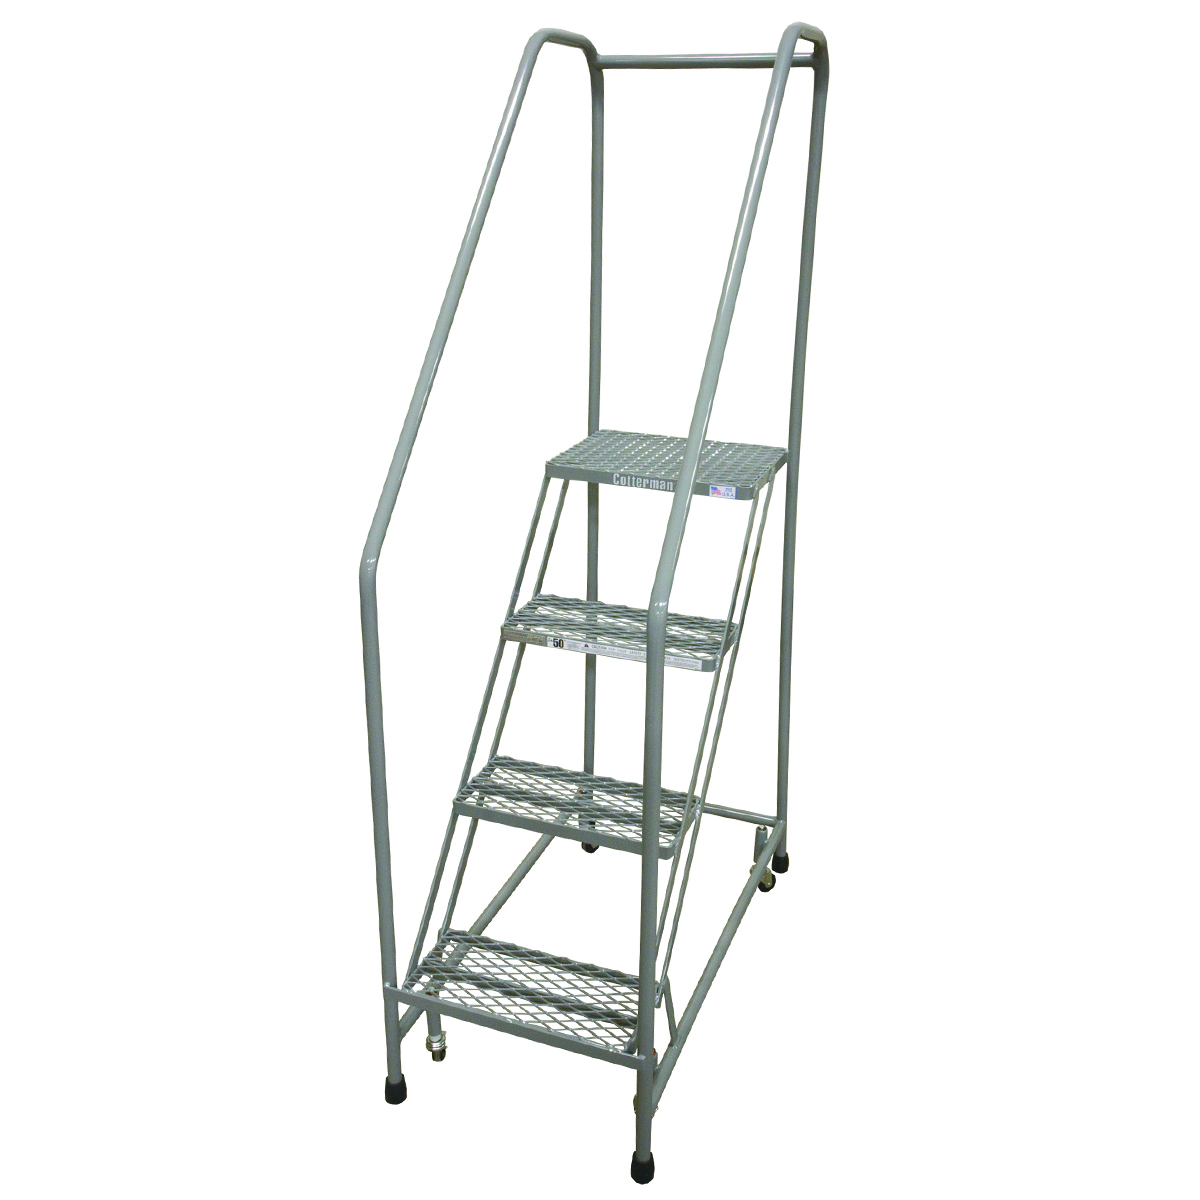 50 Degree Climbing Angle Ladder with 3 Steps and Platform